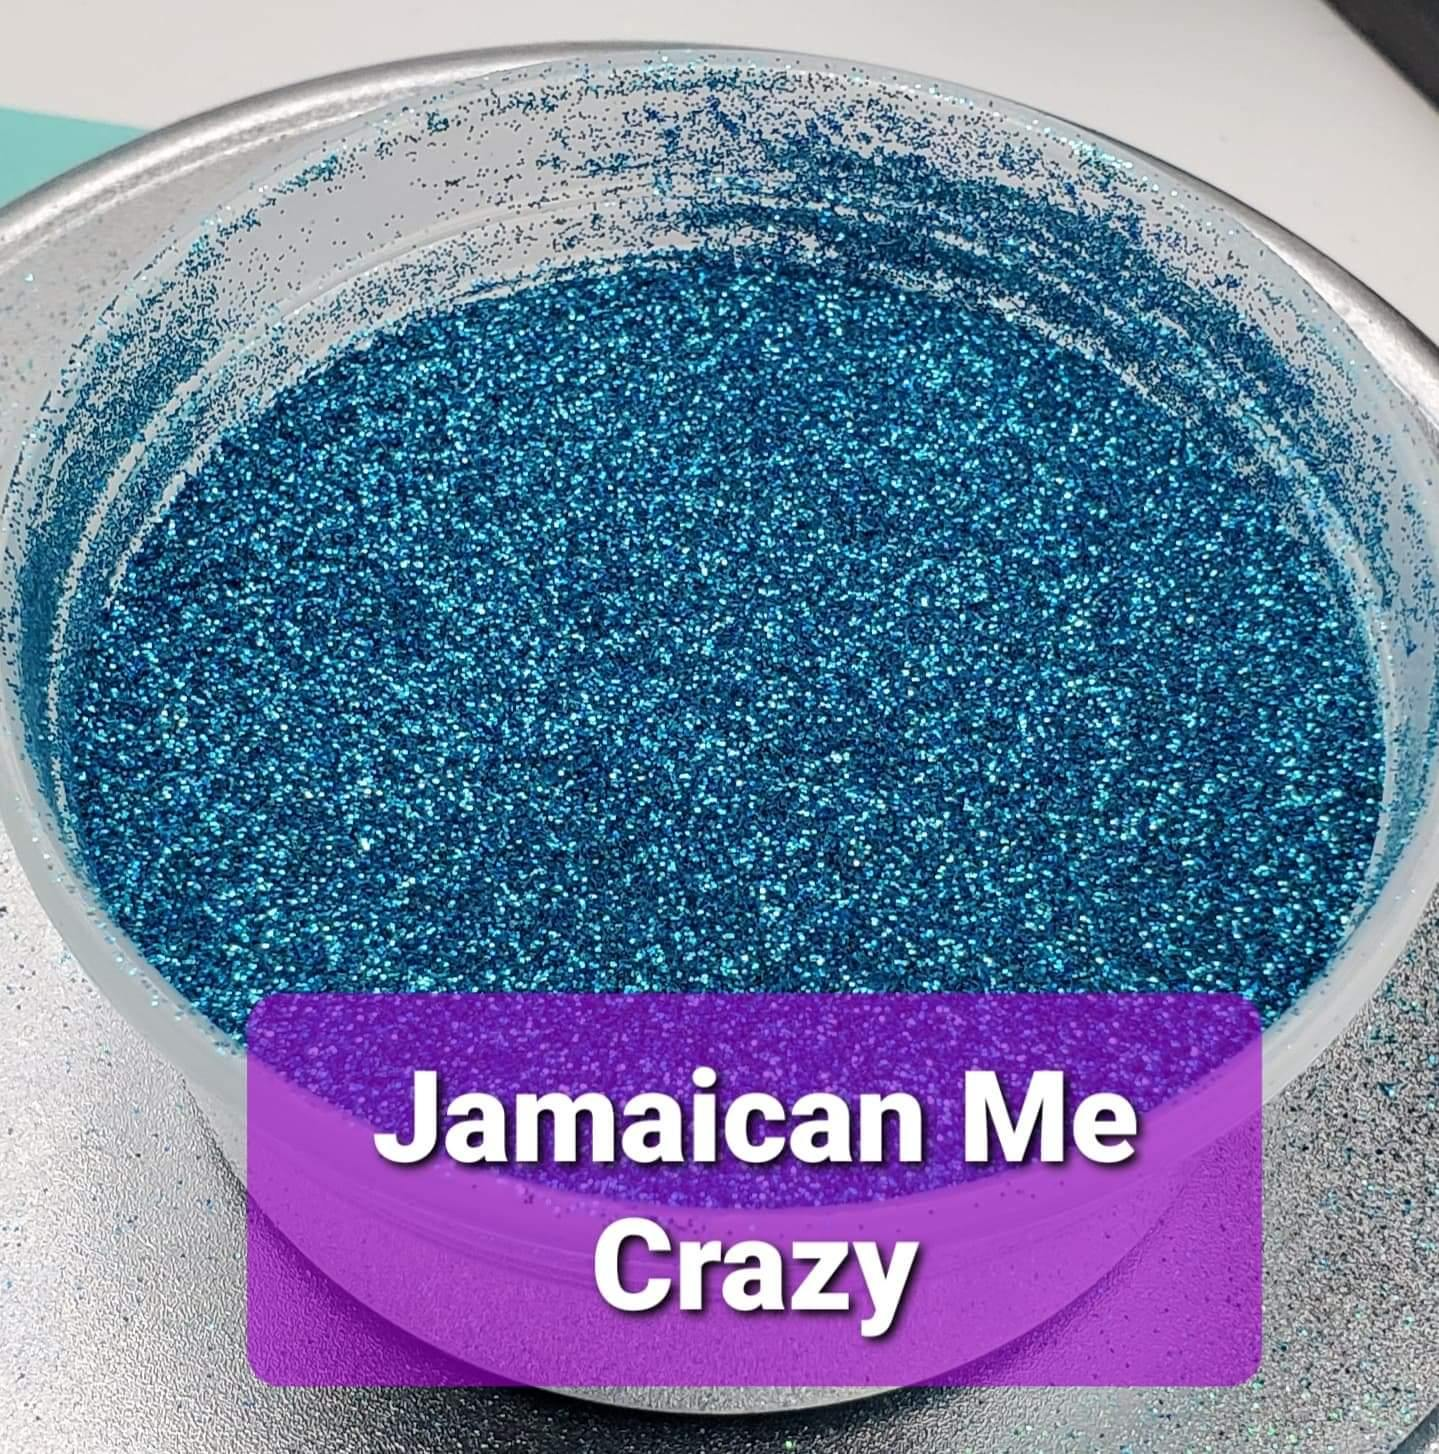 Jamaican Me Crazy - Custom by GGH - Grams' Glitter House